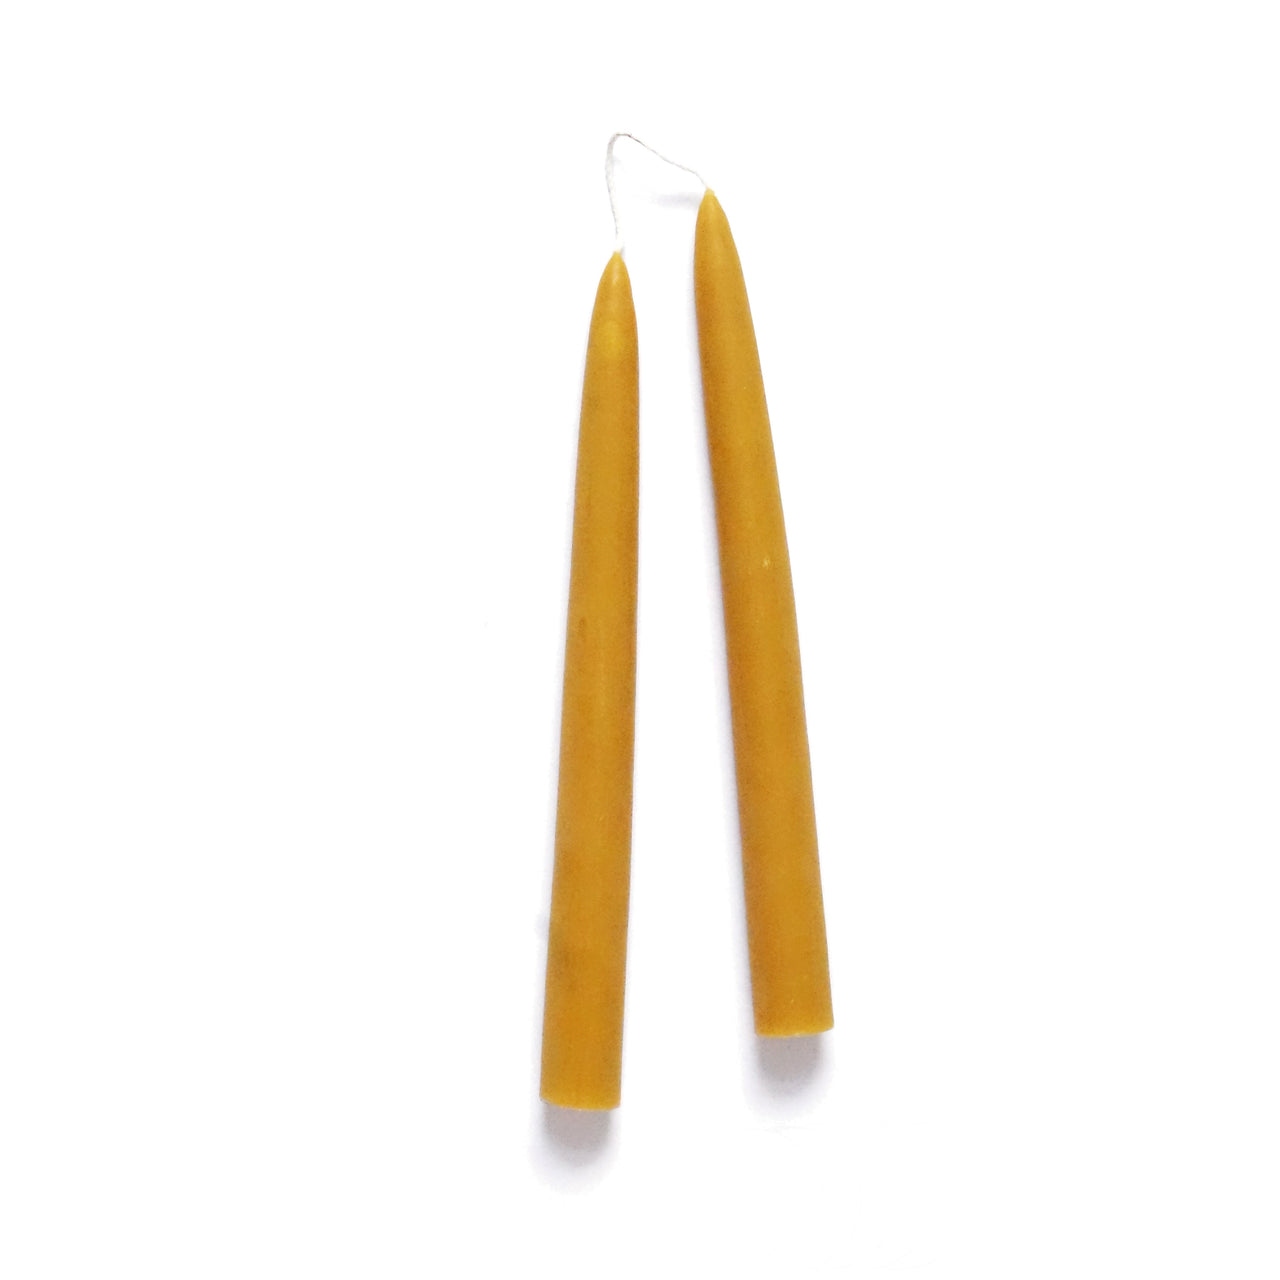 Pair of Hand Dipped Tall Beeswax Candles